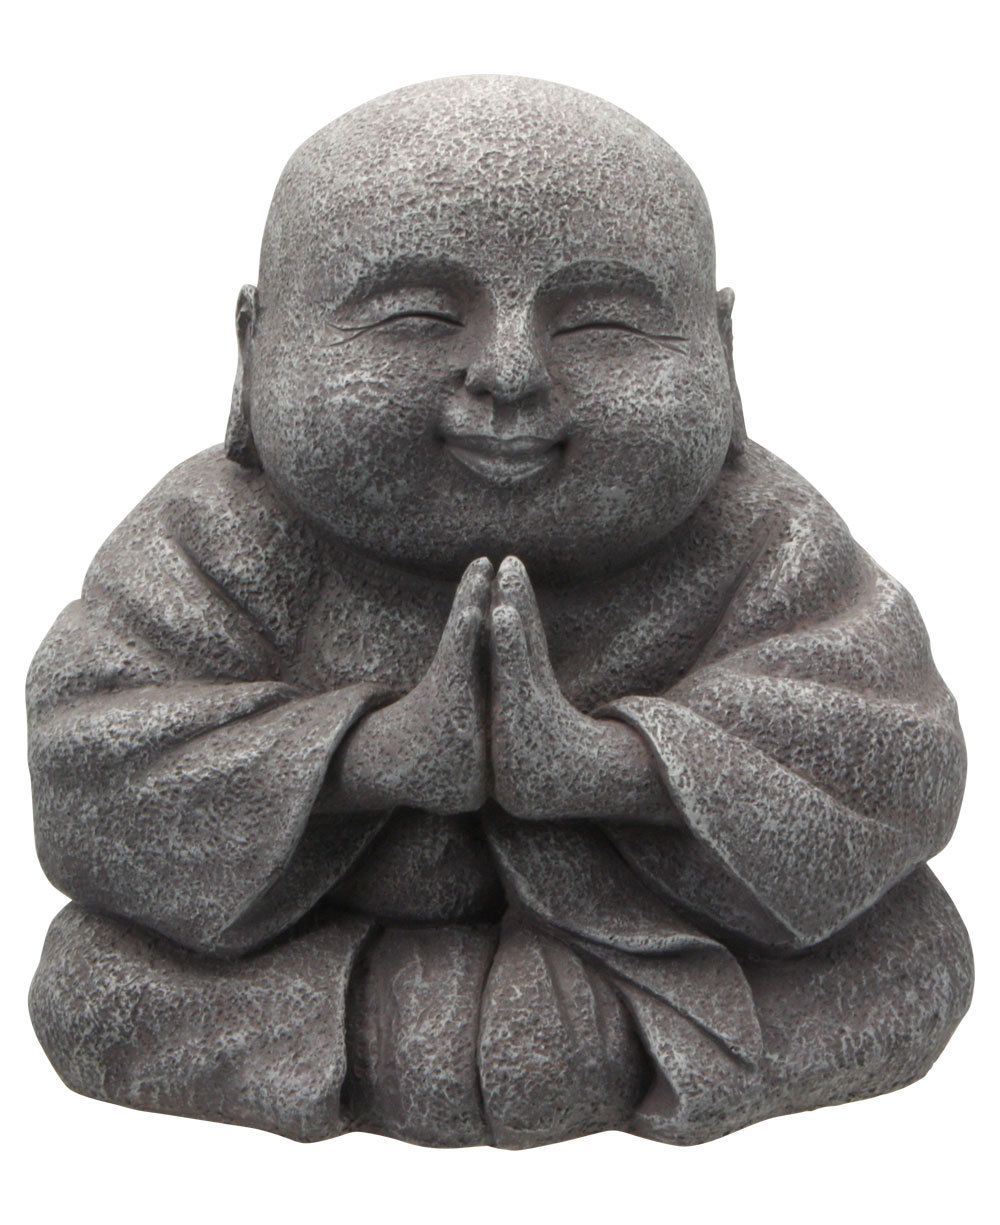 Praying happy buddha statue 8 inches buddha and gardens happy buddha likeness is symbolic of joy mirth and contentment and it is said that rubbing the head or belly of a happy buddha statue brings good luck and biocorpaavc Choice Image